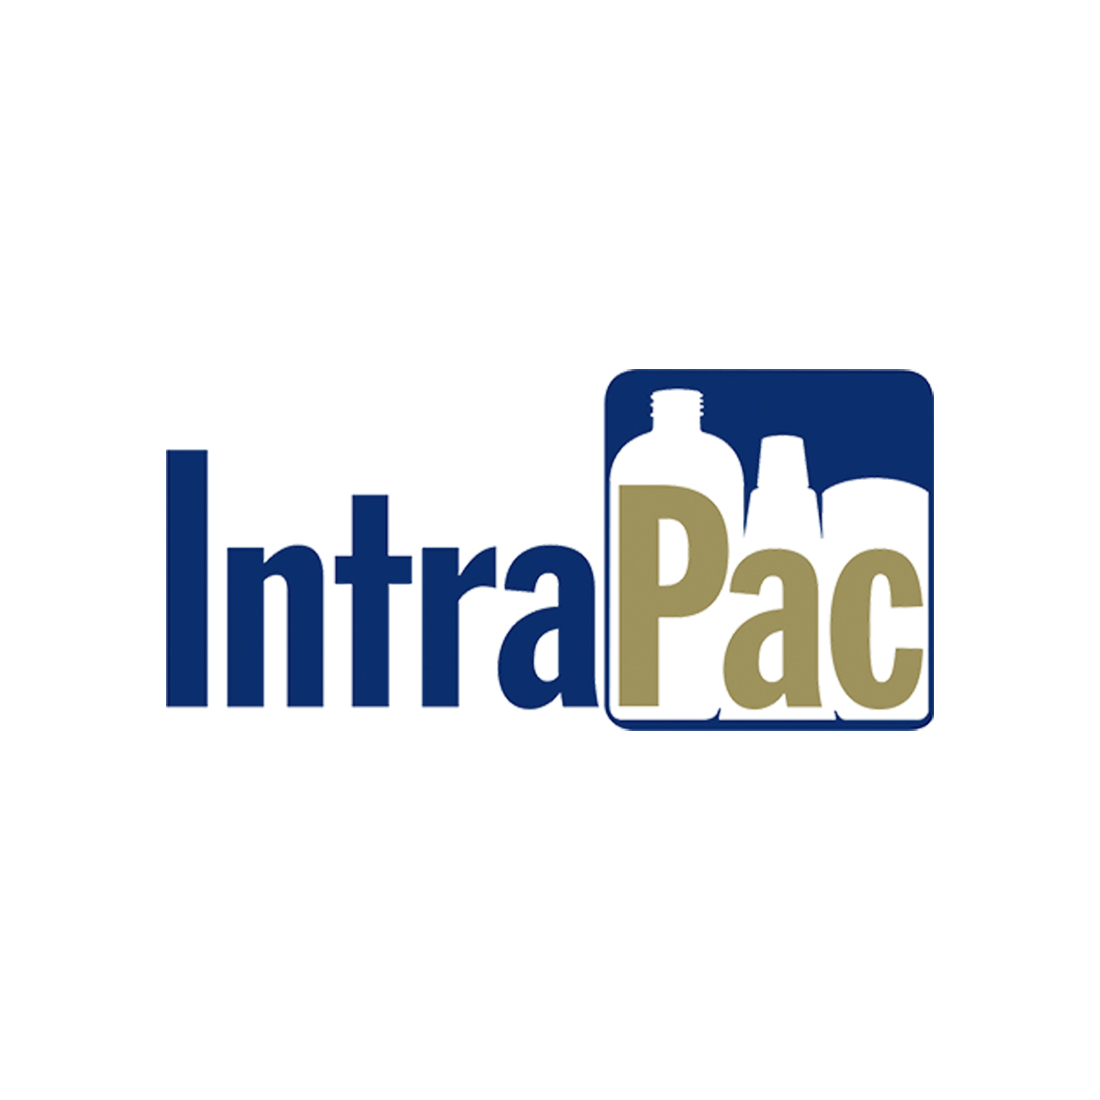 IntraPac International Corporation